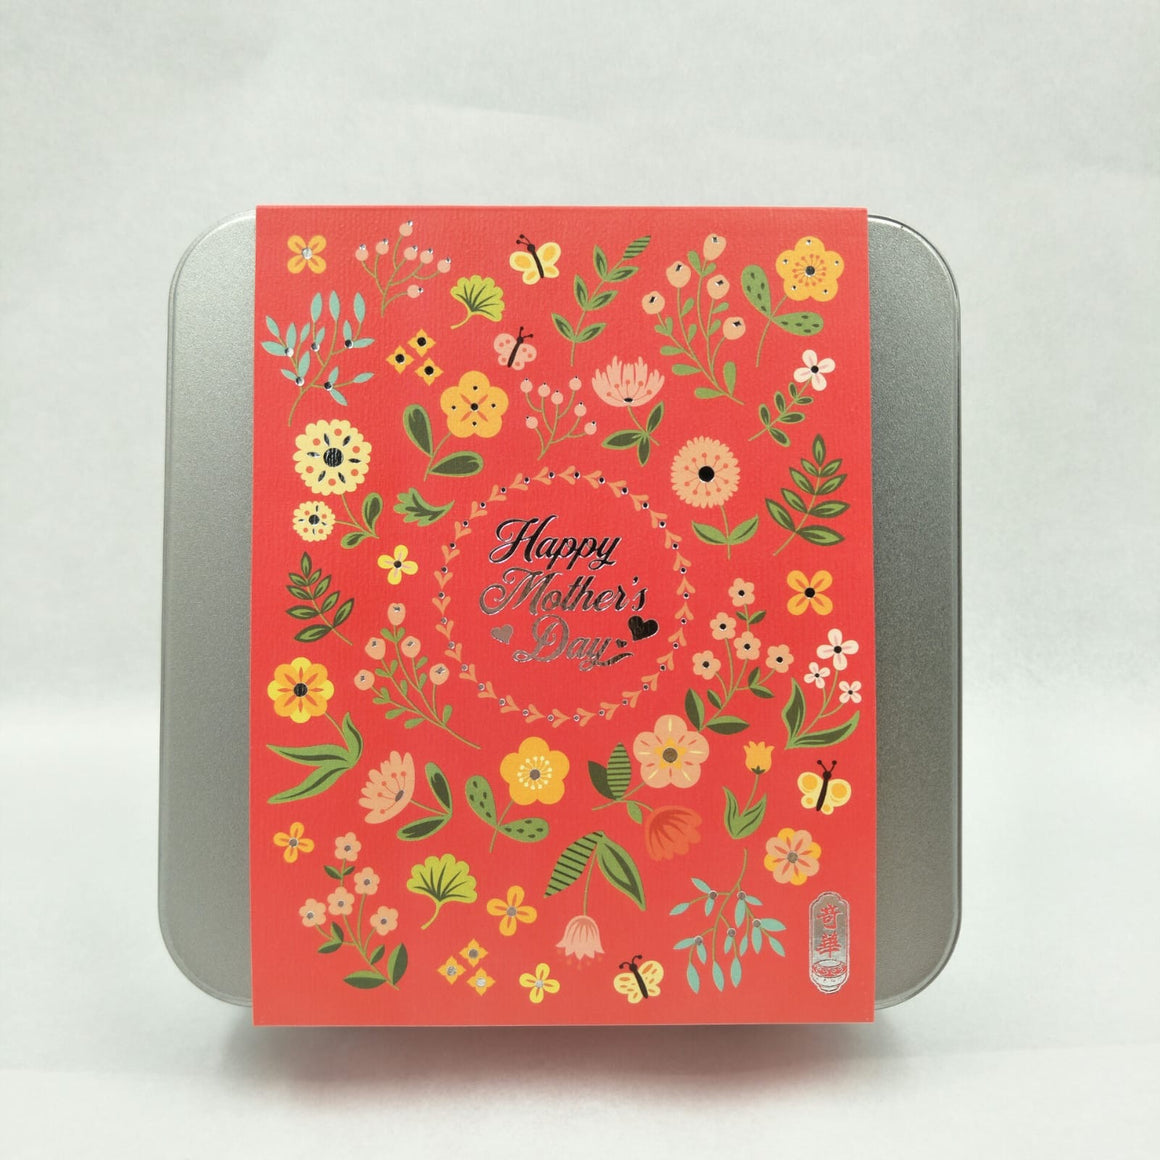 Love You Mom Silver Box 媽咪花漾禮盒